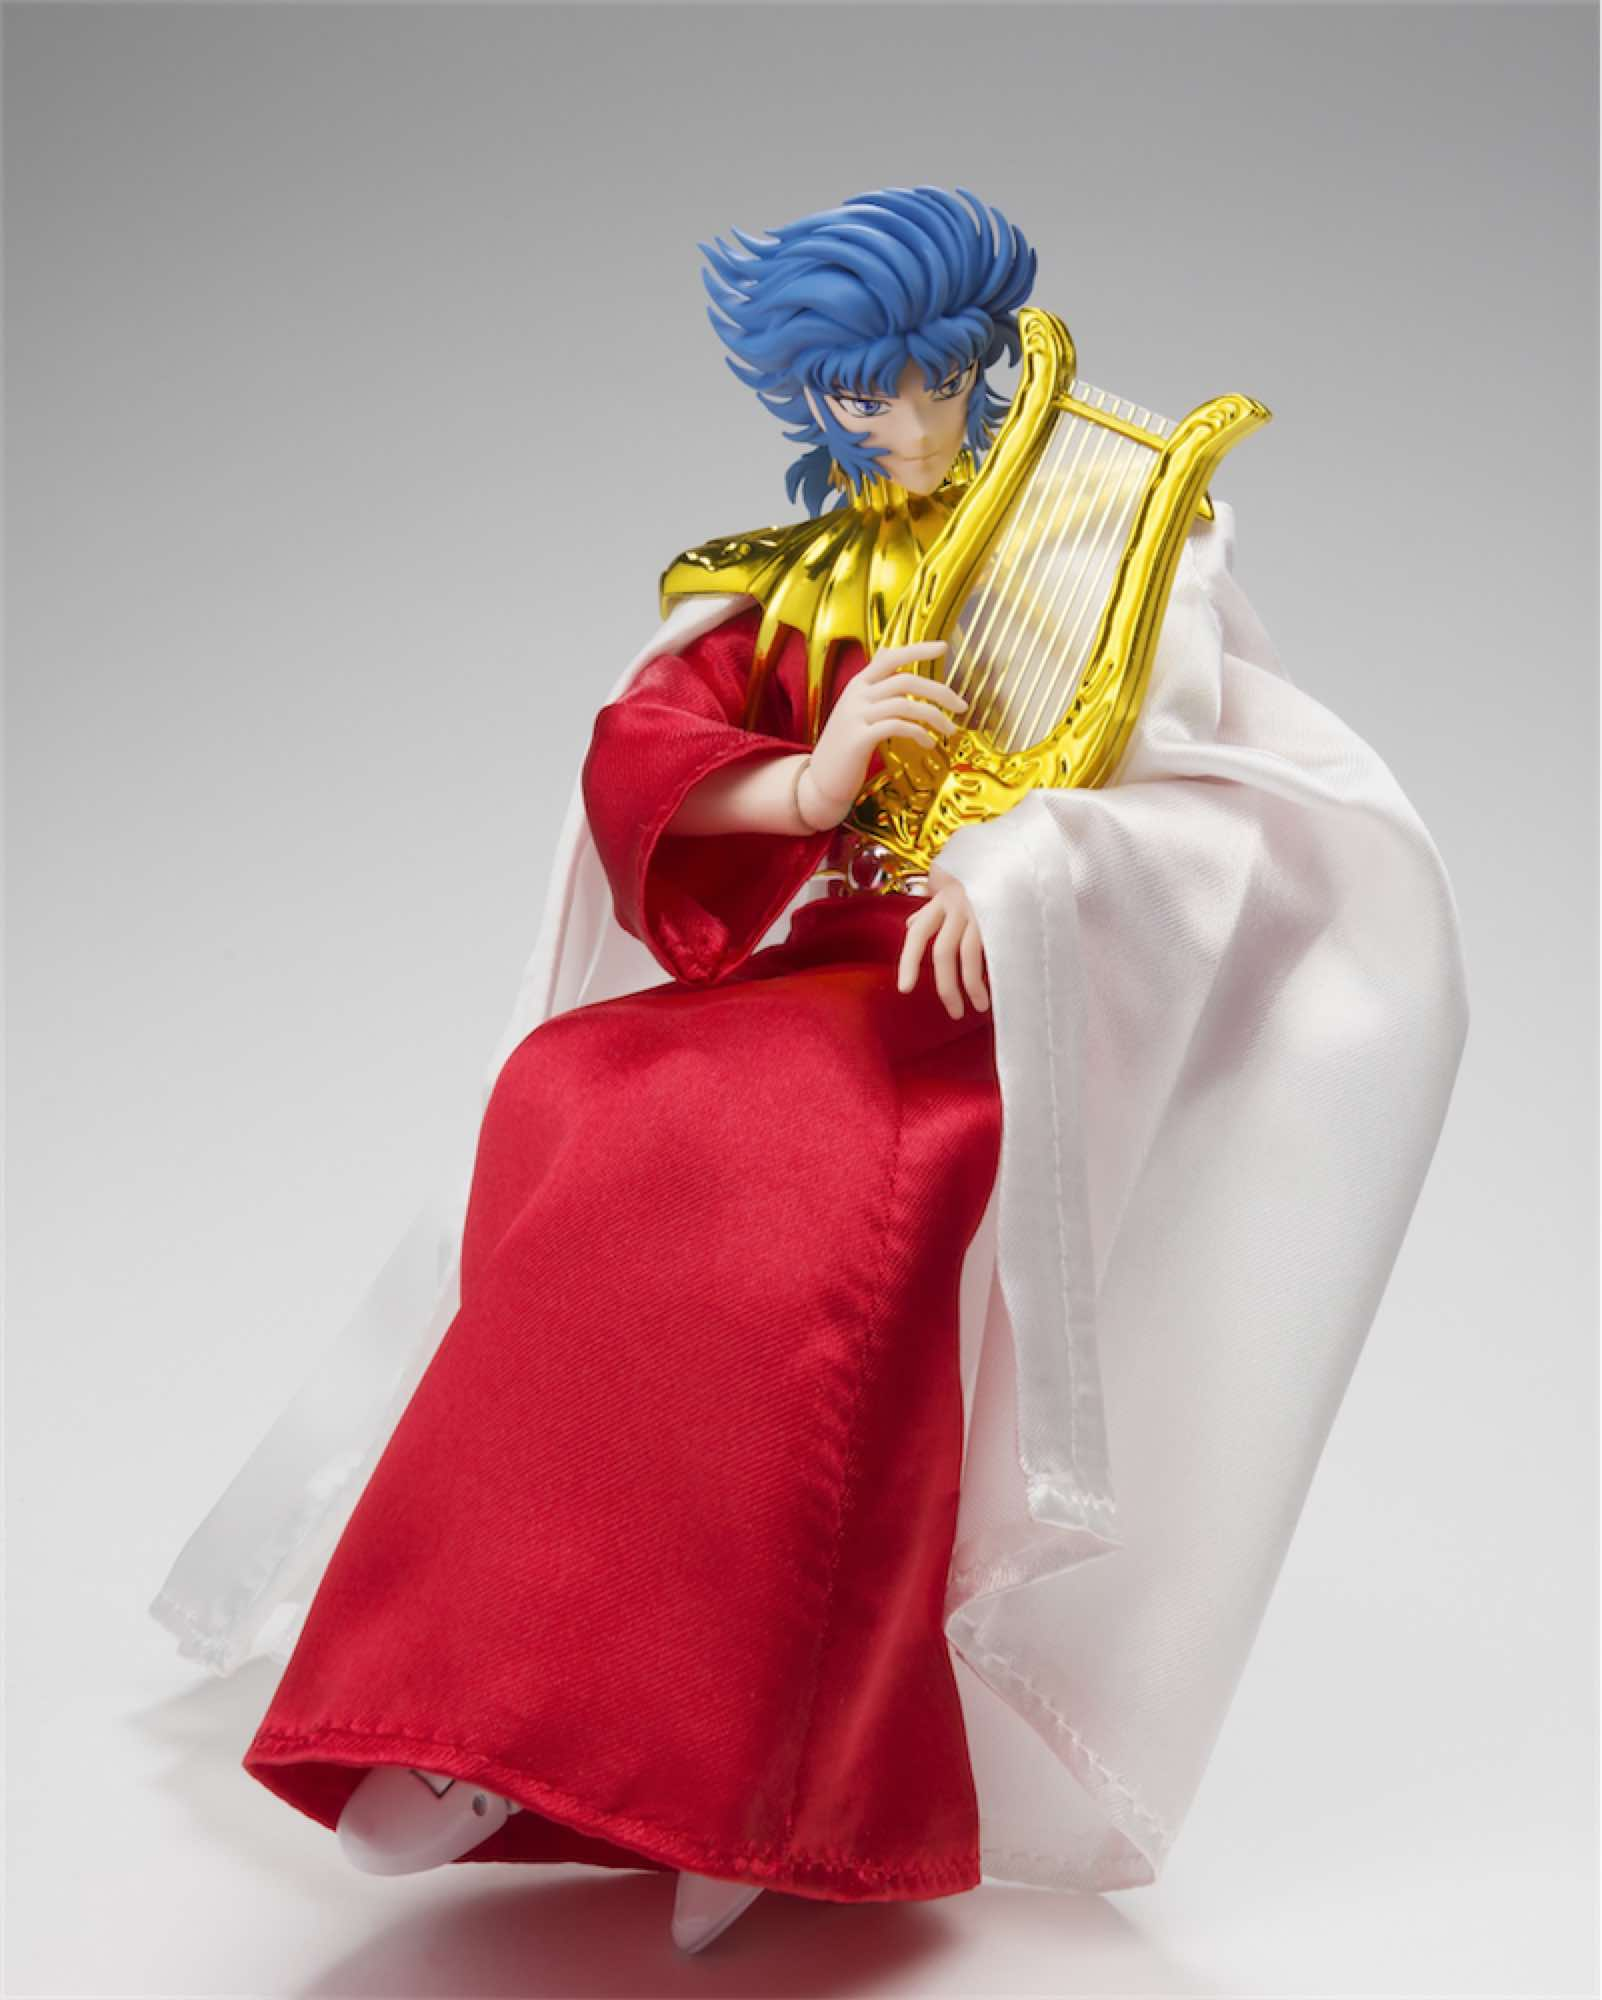 ABEL THE GOD SUN FIGURA 16,5 CM SAINT SEIYA LEGEND OF CRIMSON YOUTH SAINT CLOTH MYTH